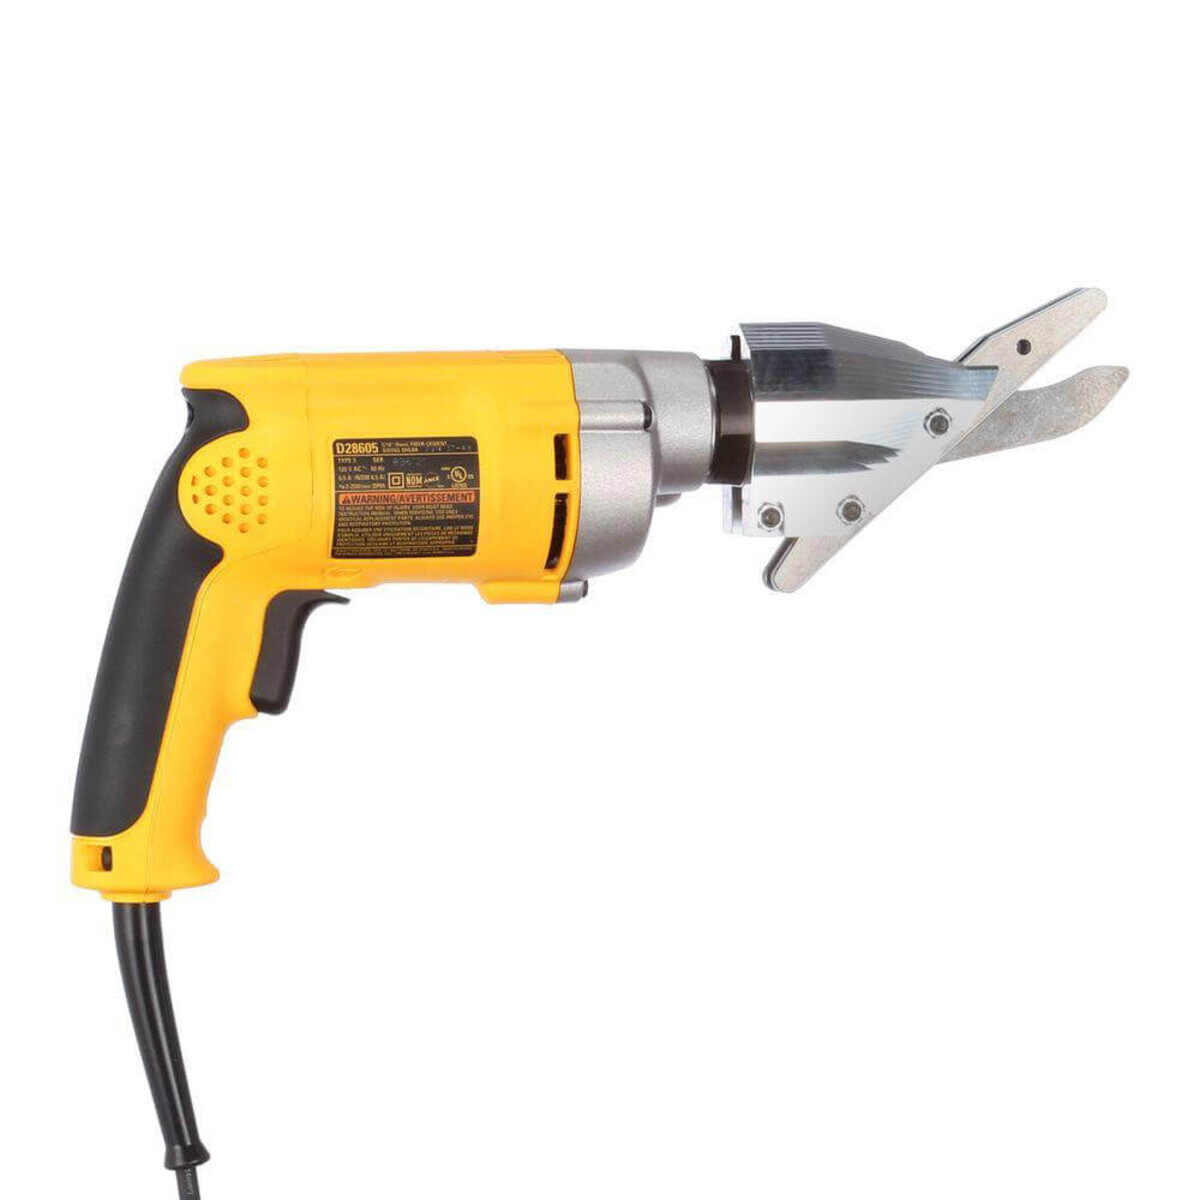 Dewalt D28605 Powerful, 6.5 Amp, all ball-bearing motor for increased power and long life when cutting cement fiber siding